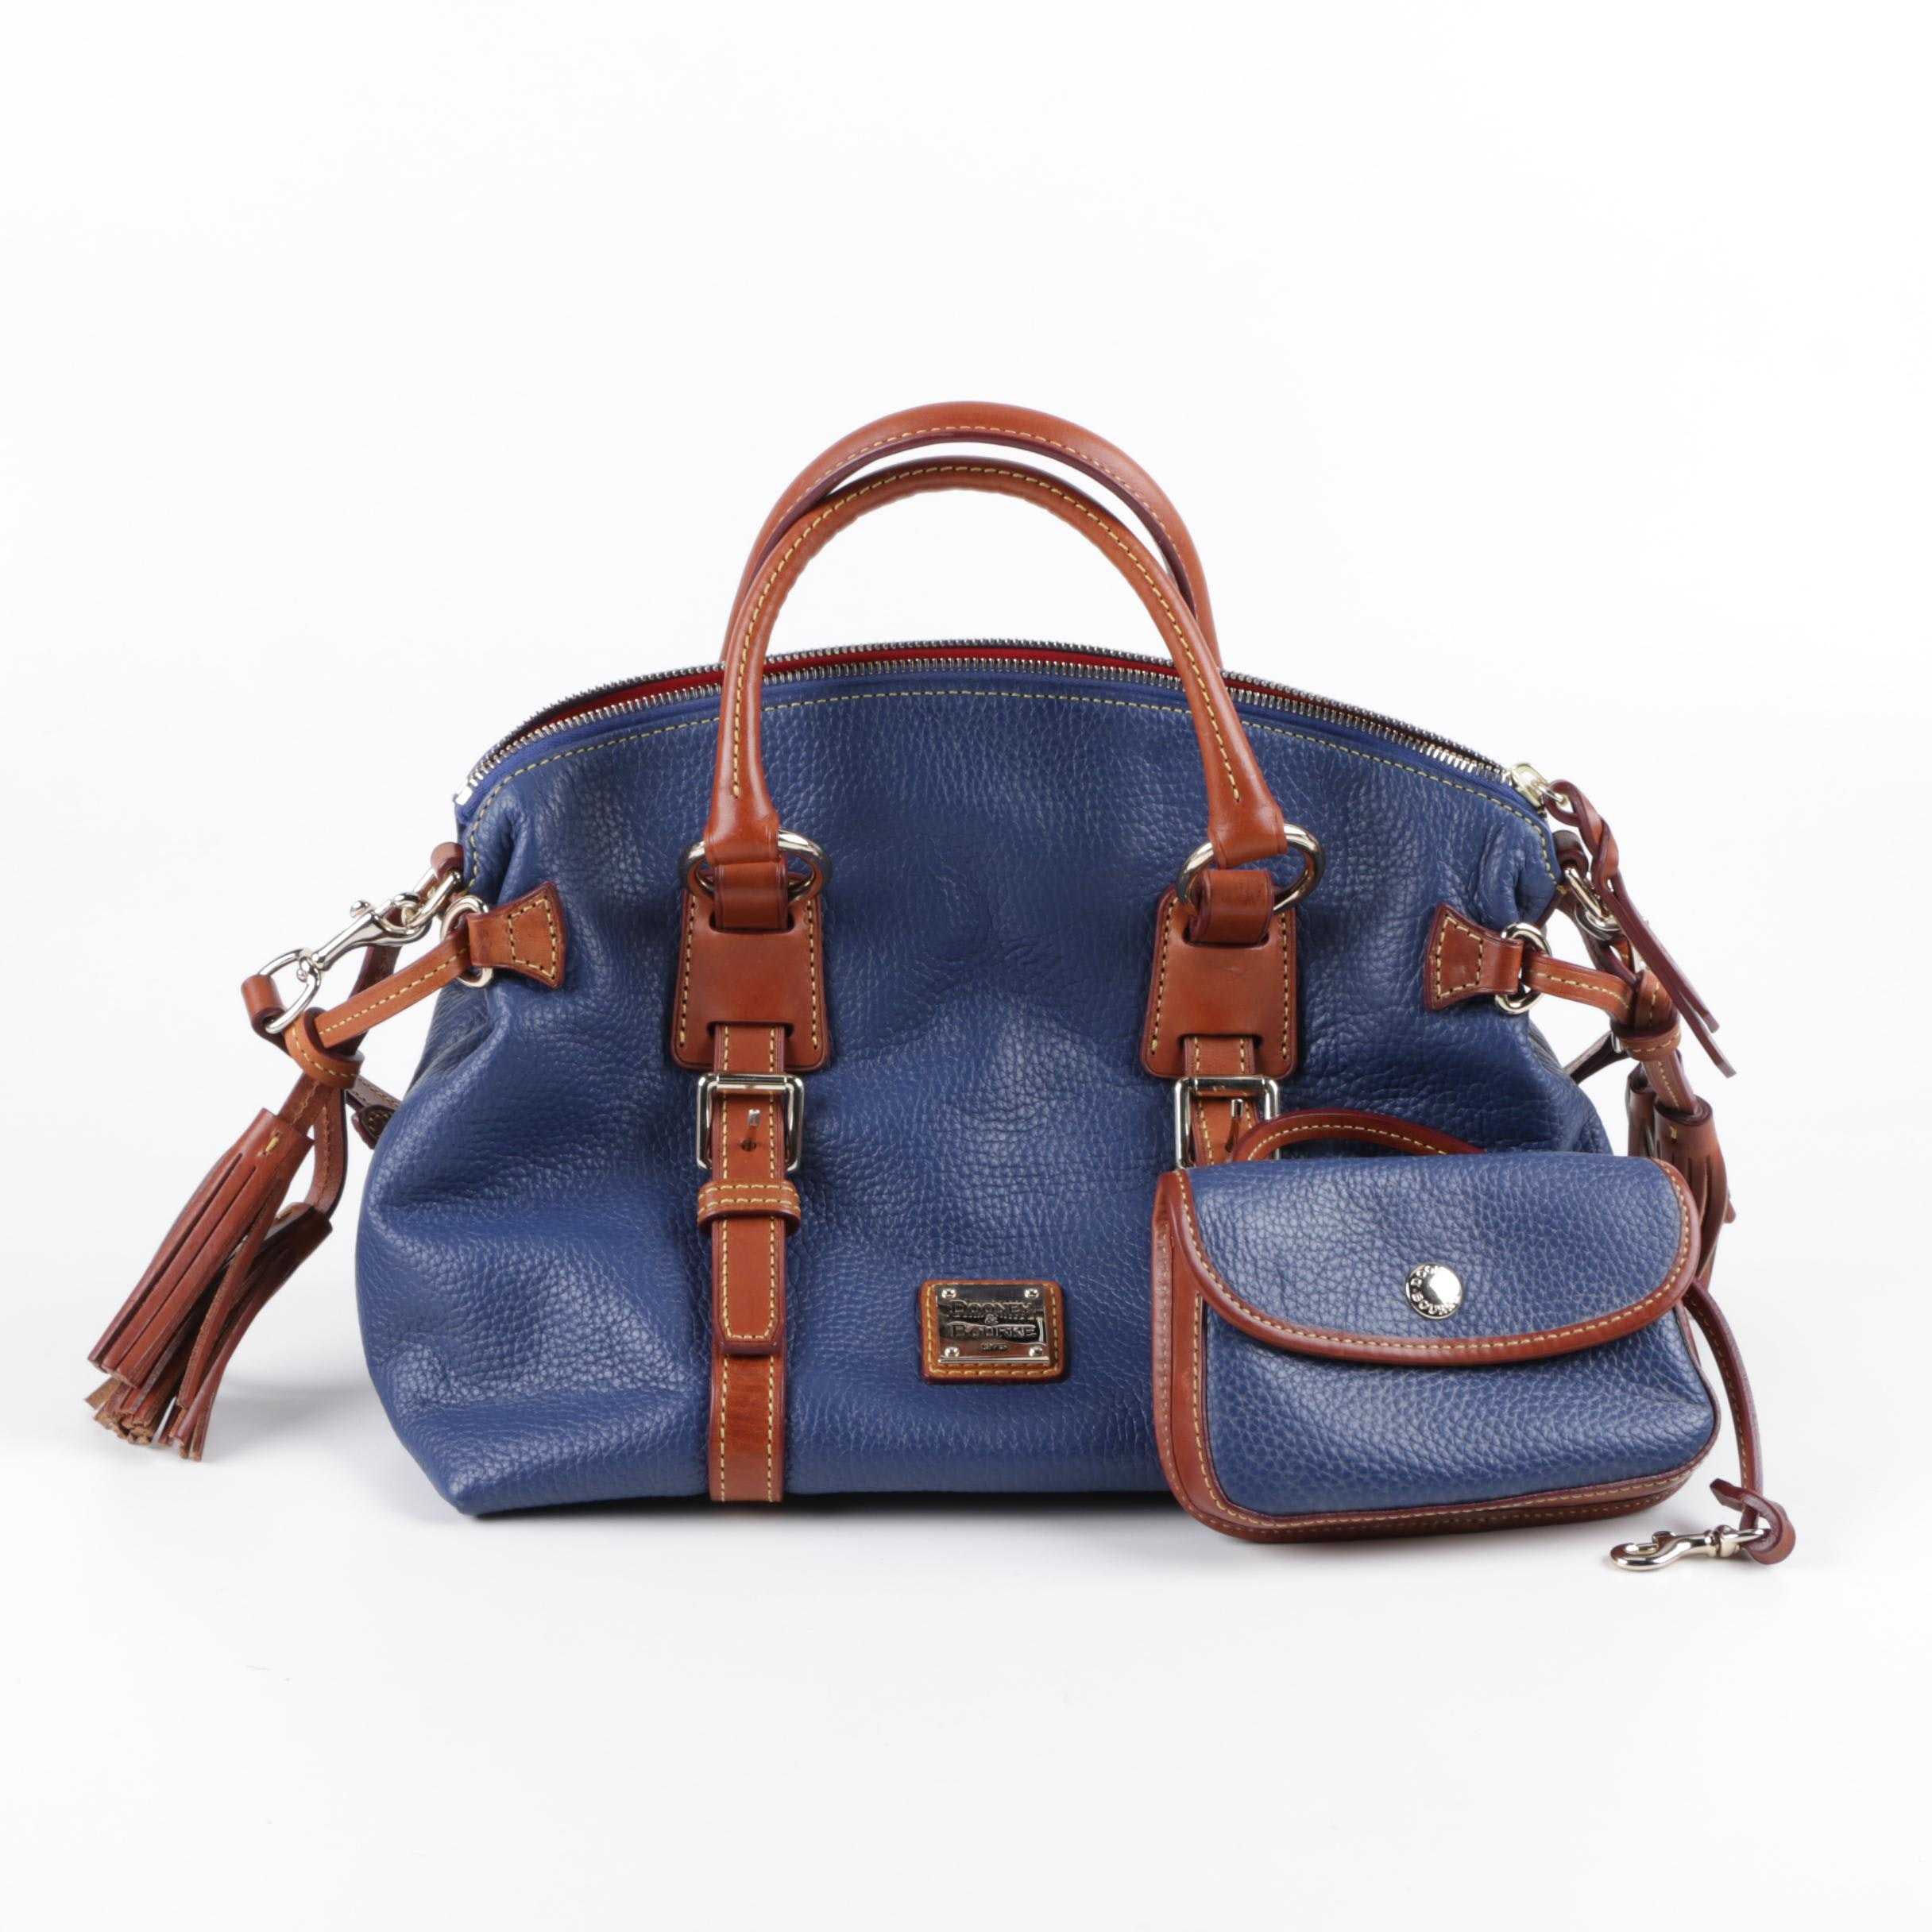 Dooney & Bourke Blue Pebbled Leather Bristol Satchel and Accessories